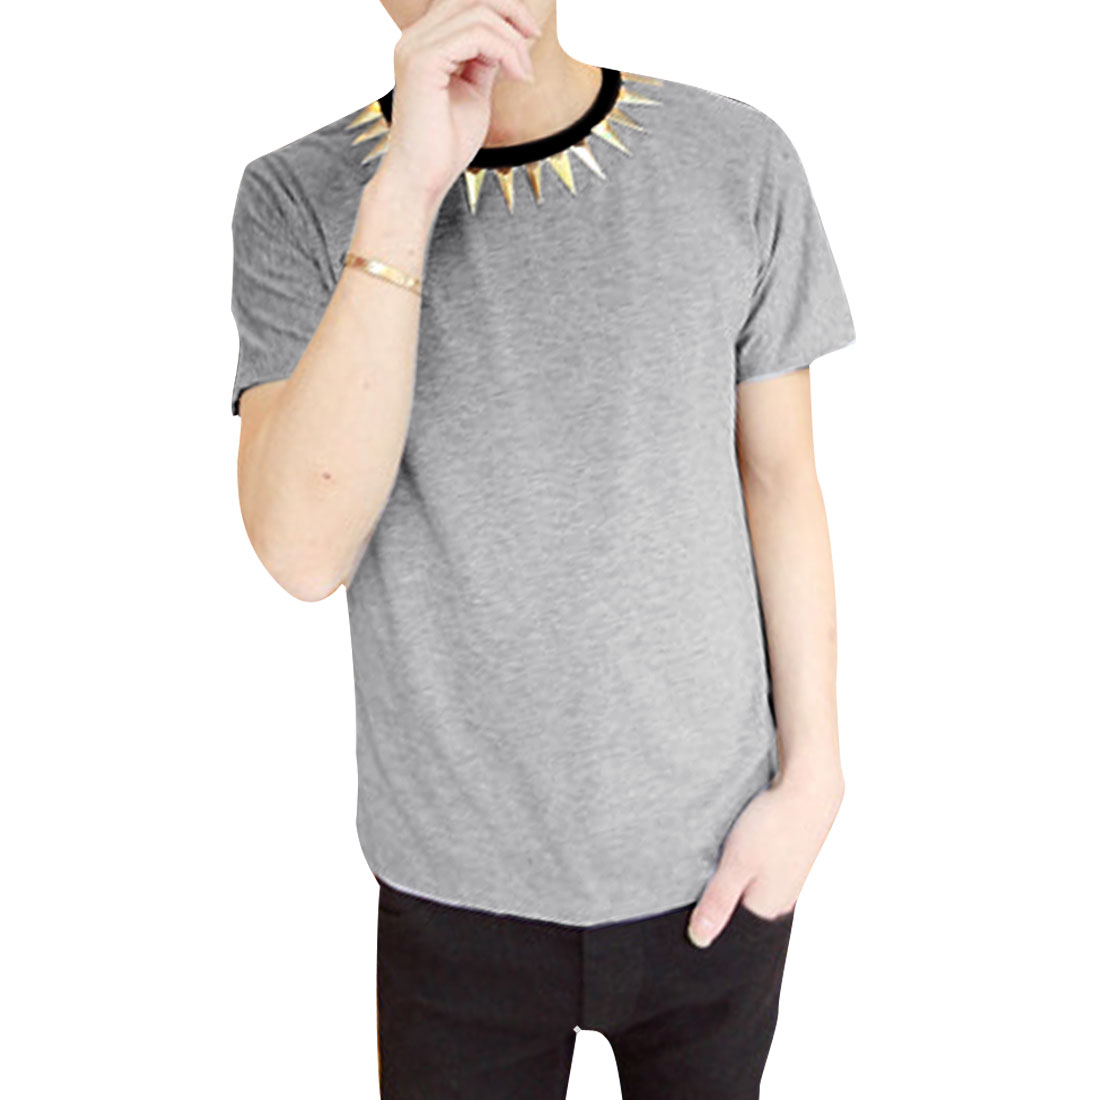 Men Round Neck Pullover Short Sleeve Studs Decor T-shirt Light Gray M